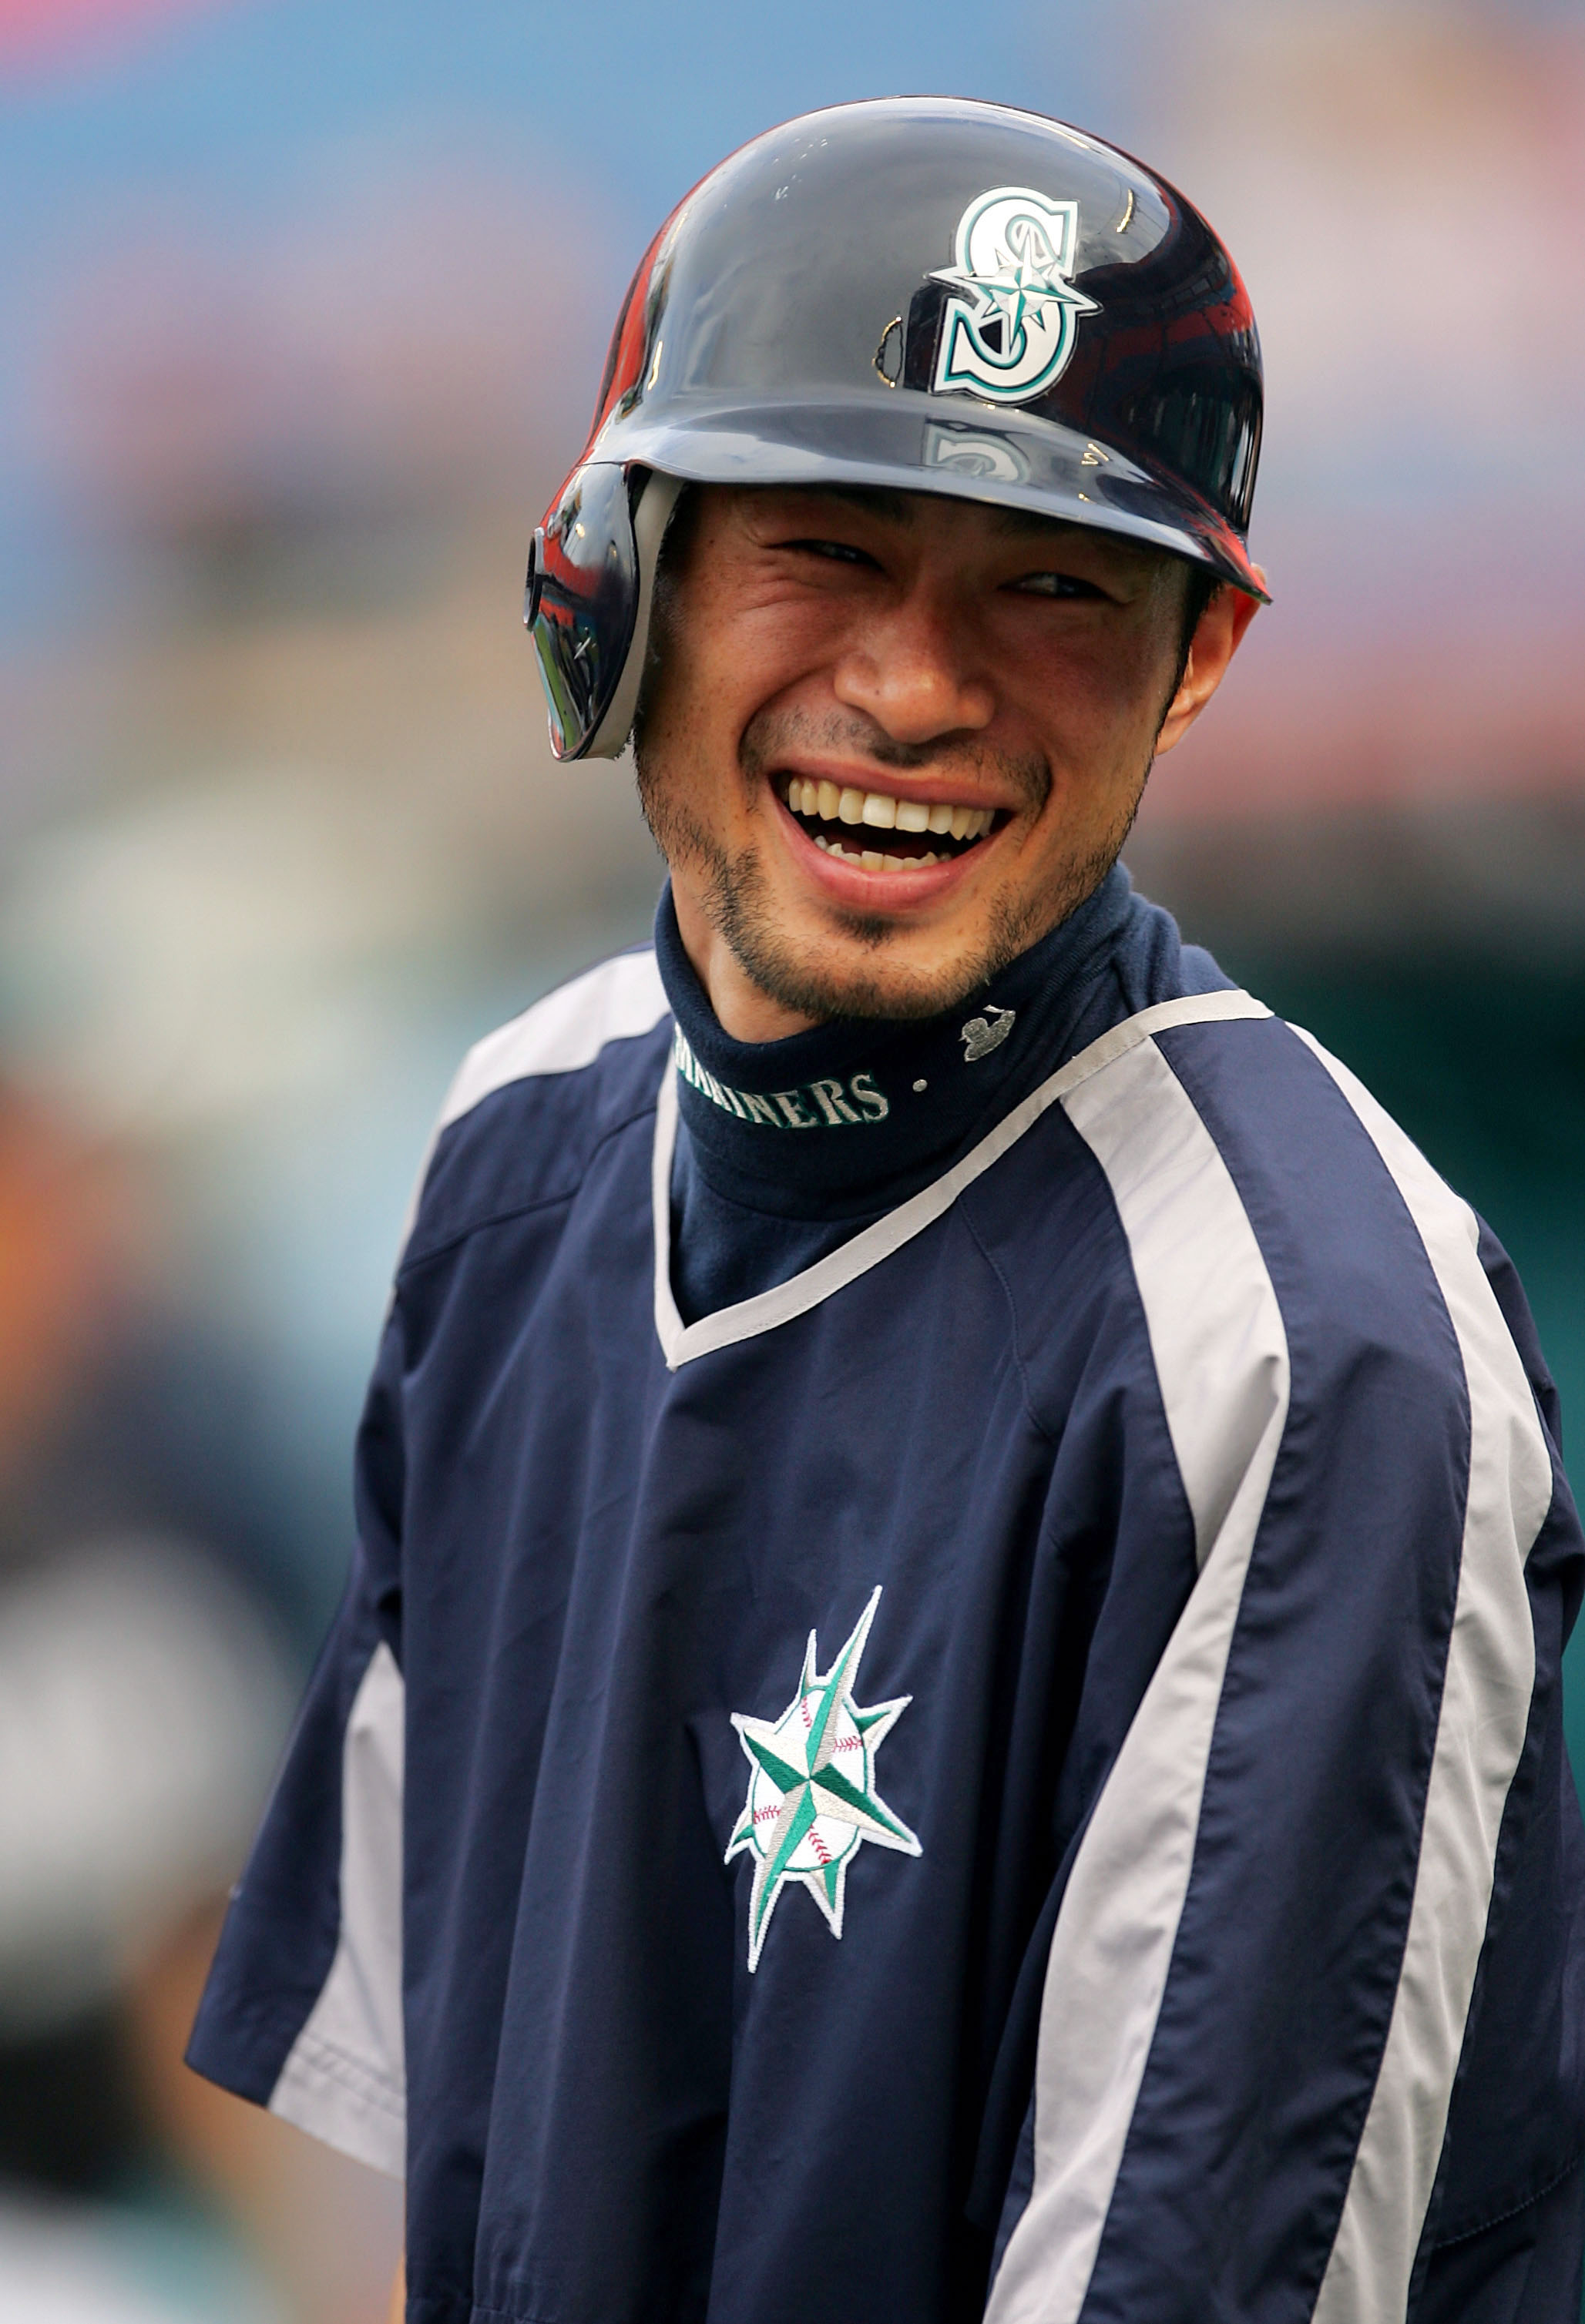 MIAMI - JUNE 8:  Ichiro Suzuki #51 of the Seattle Mariners laughs at a joke during batting practice prior to the game between the Seattle Mariners and the Florida Marlins on June 8, 2005 at Dolphin Stadium in Miami, Florida.  (Photo By Jamie Squire/Getty